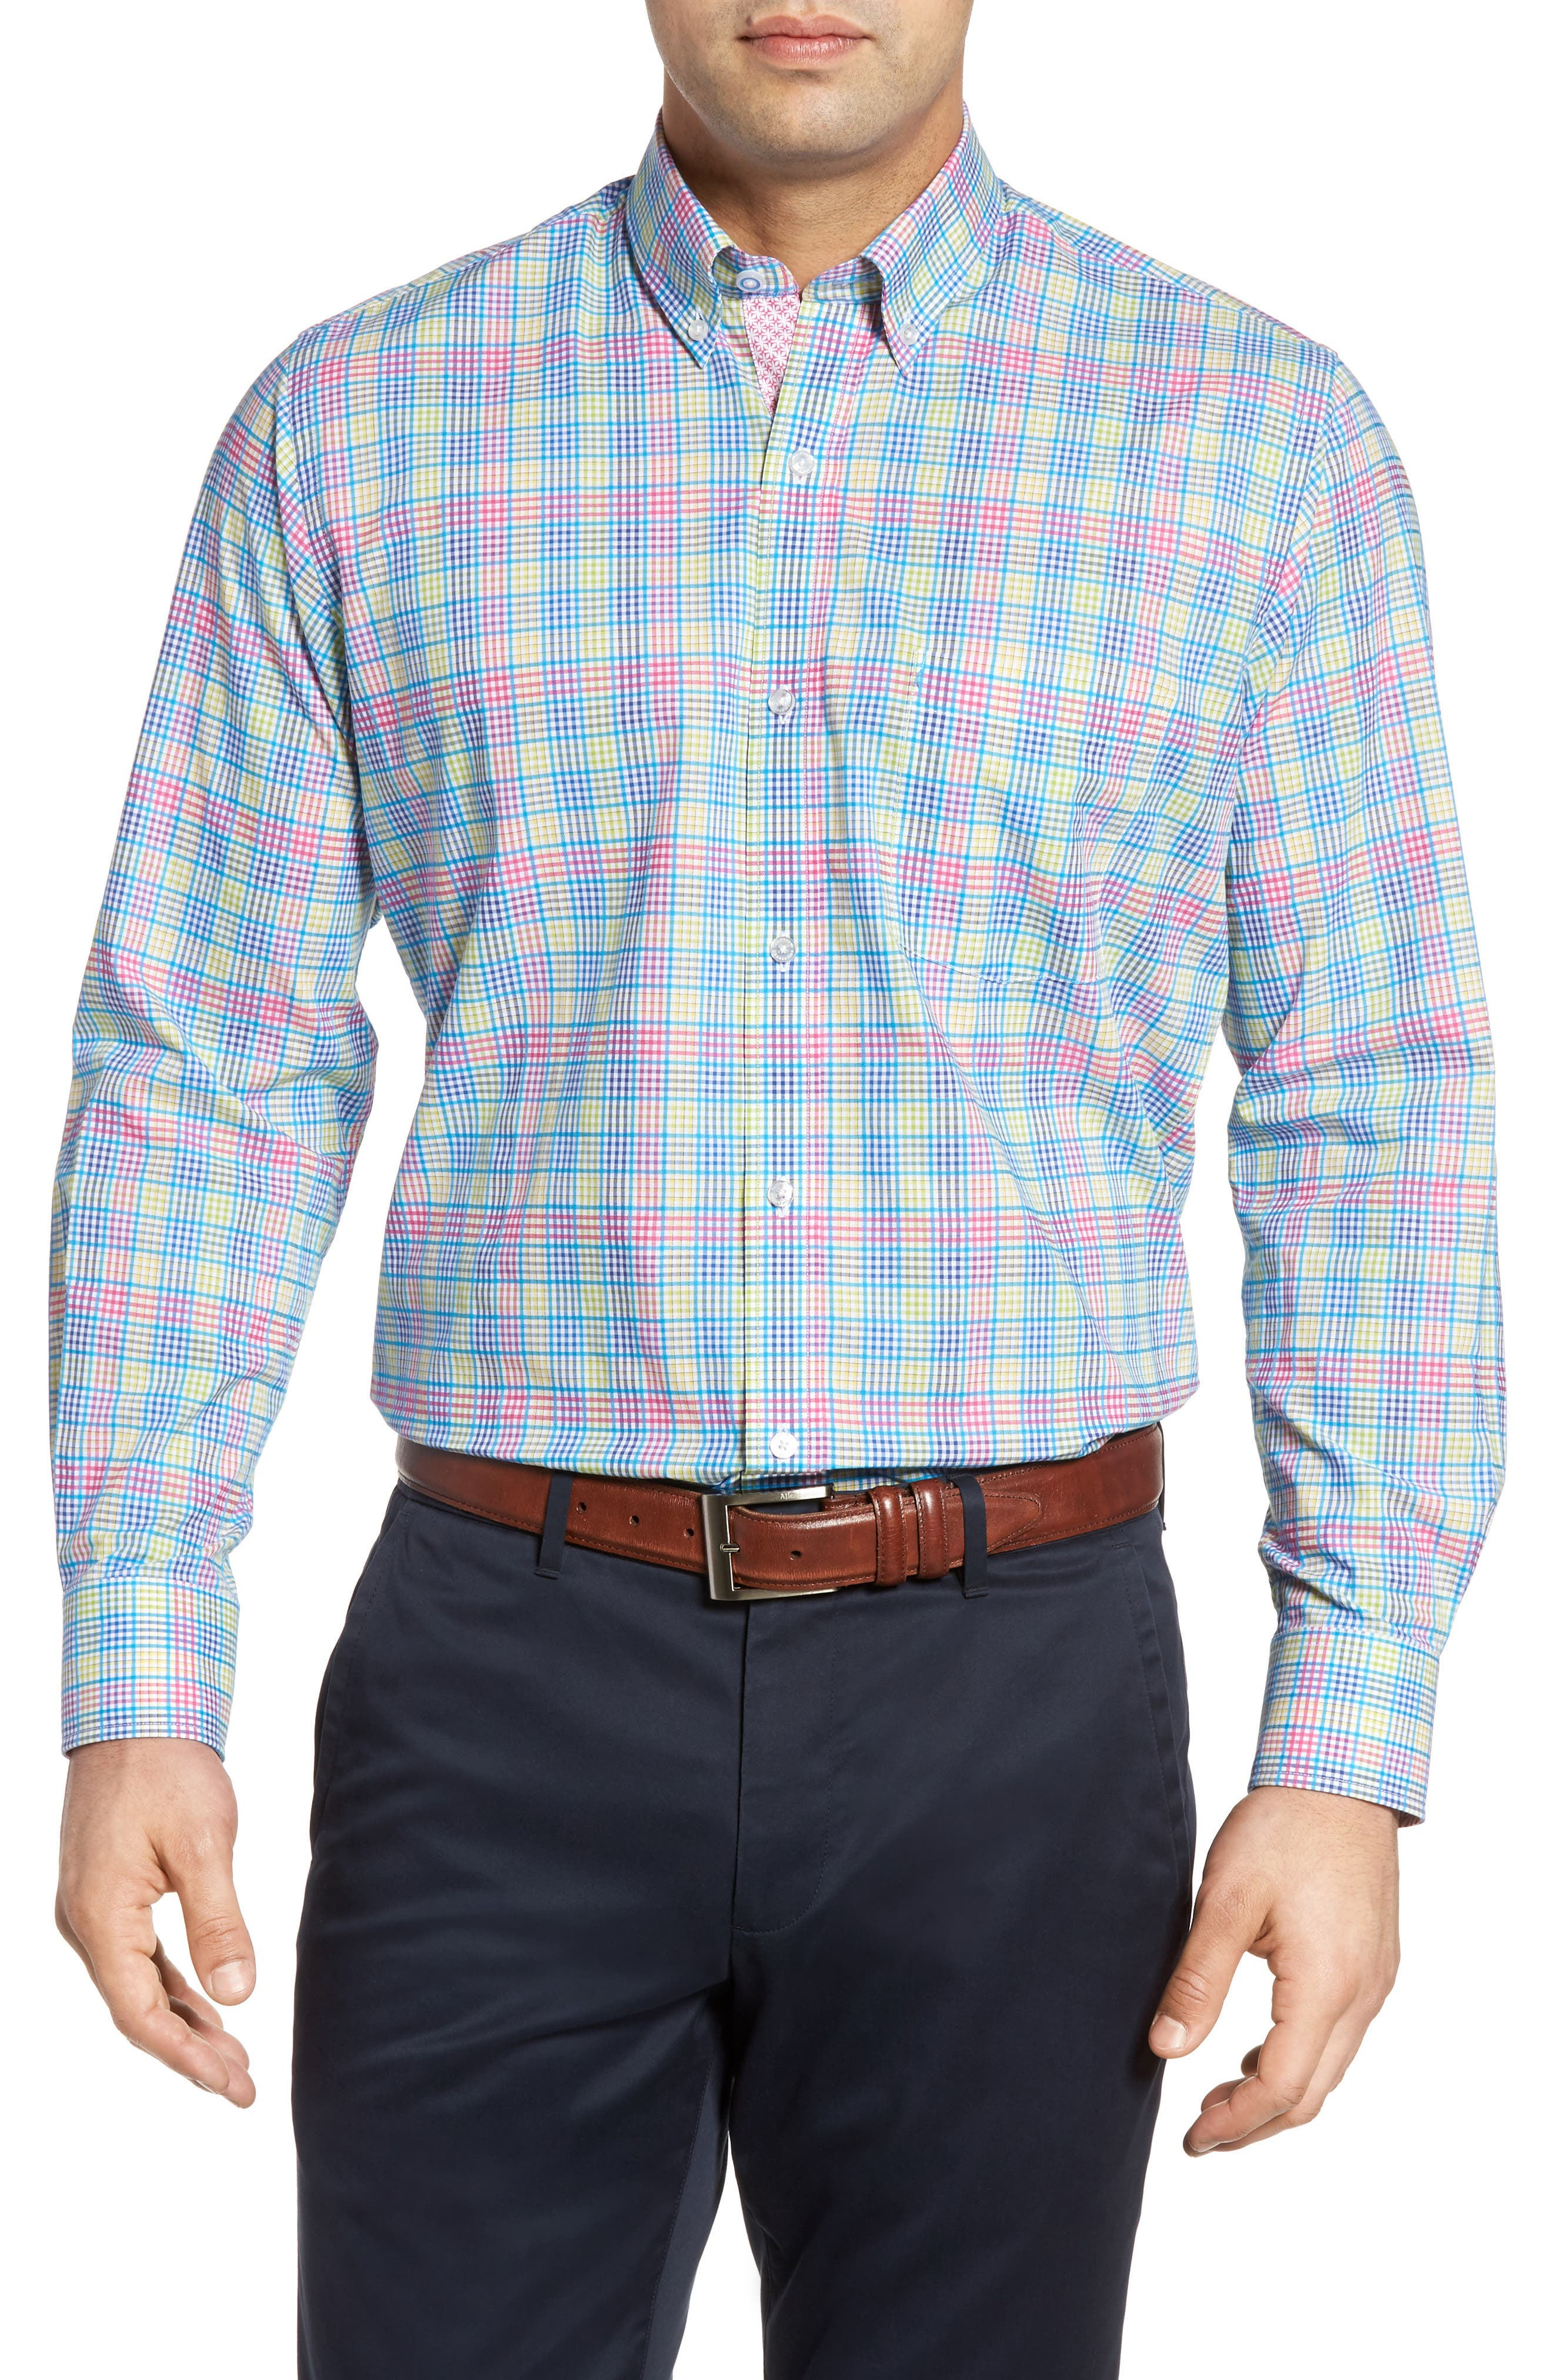 Peachleaf Sport Shirt,                         Main,                         color, Blue/ Lime